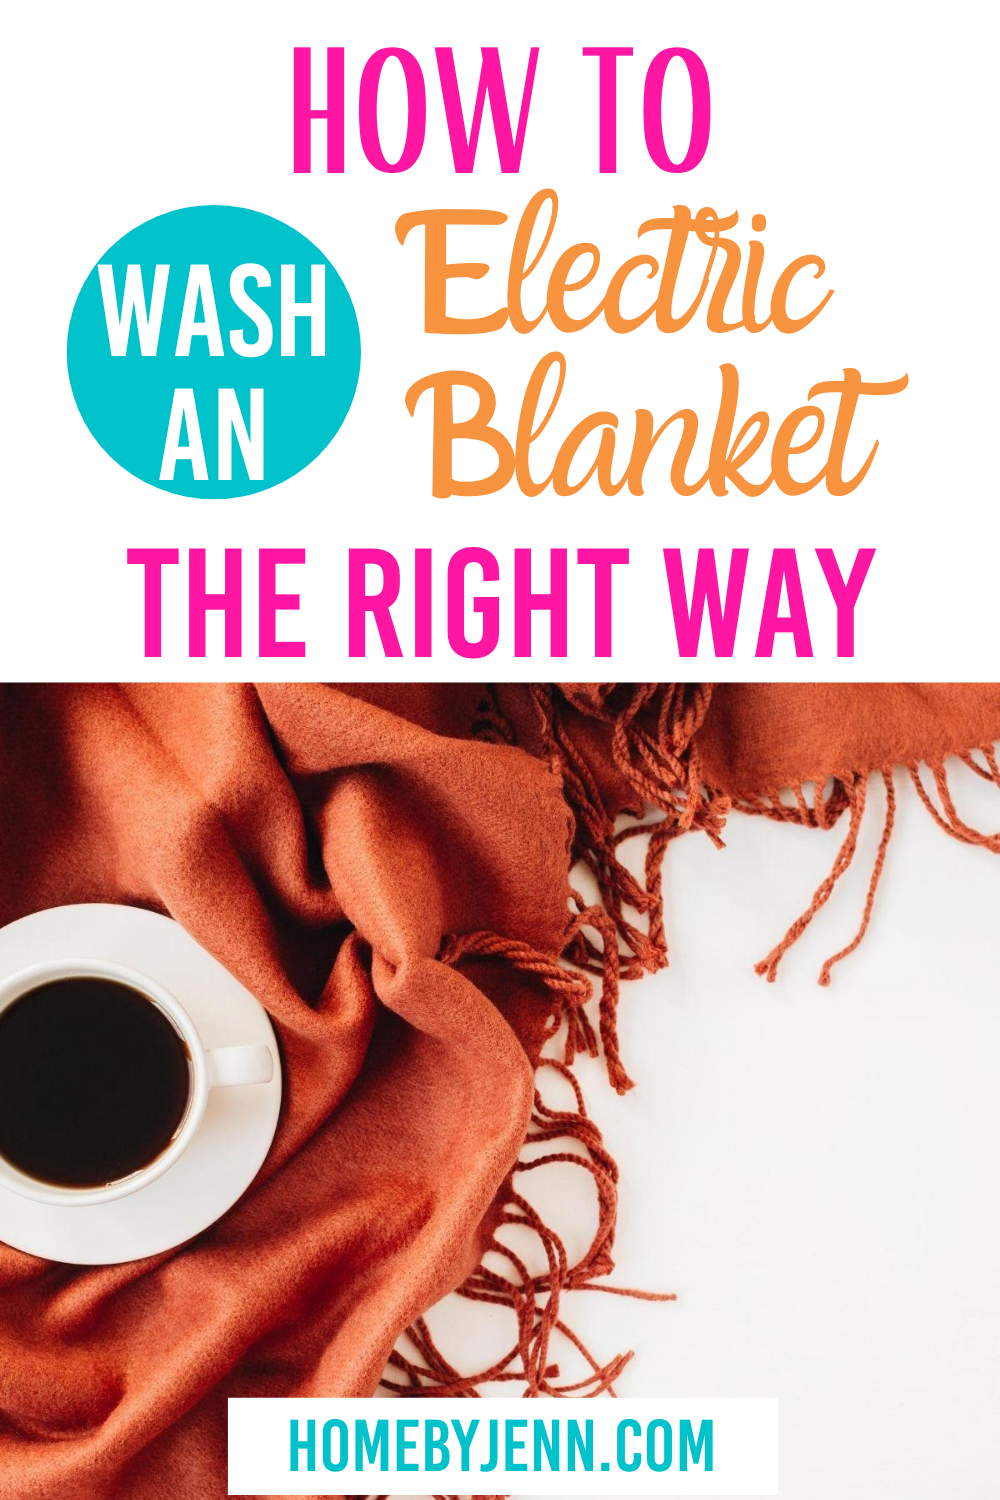 Cleaning an electric blanket is tricky. Here you'll learn exactly how to clean an electric blanket to make sure all of your blankets stay fresh and clean. #electricblanket #howtocleananelectricblanket #blanketcare via @homebyjenn